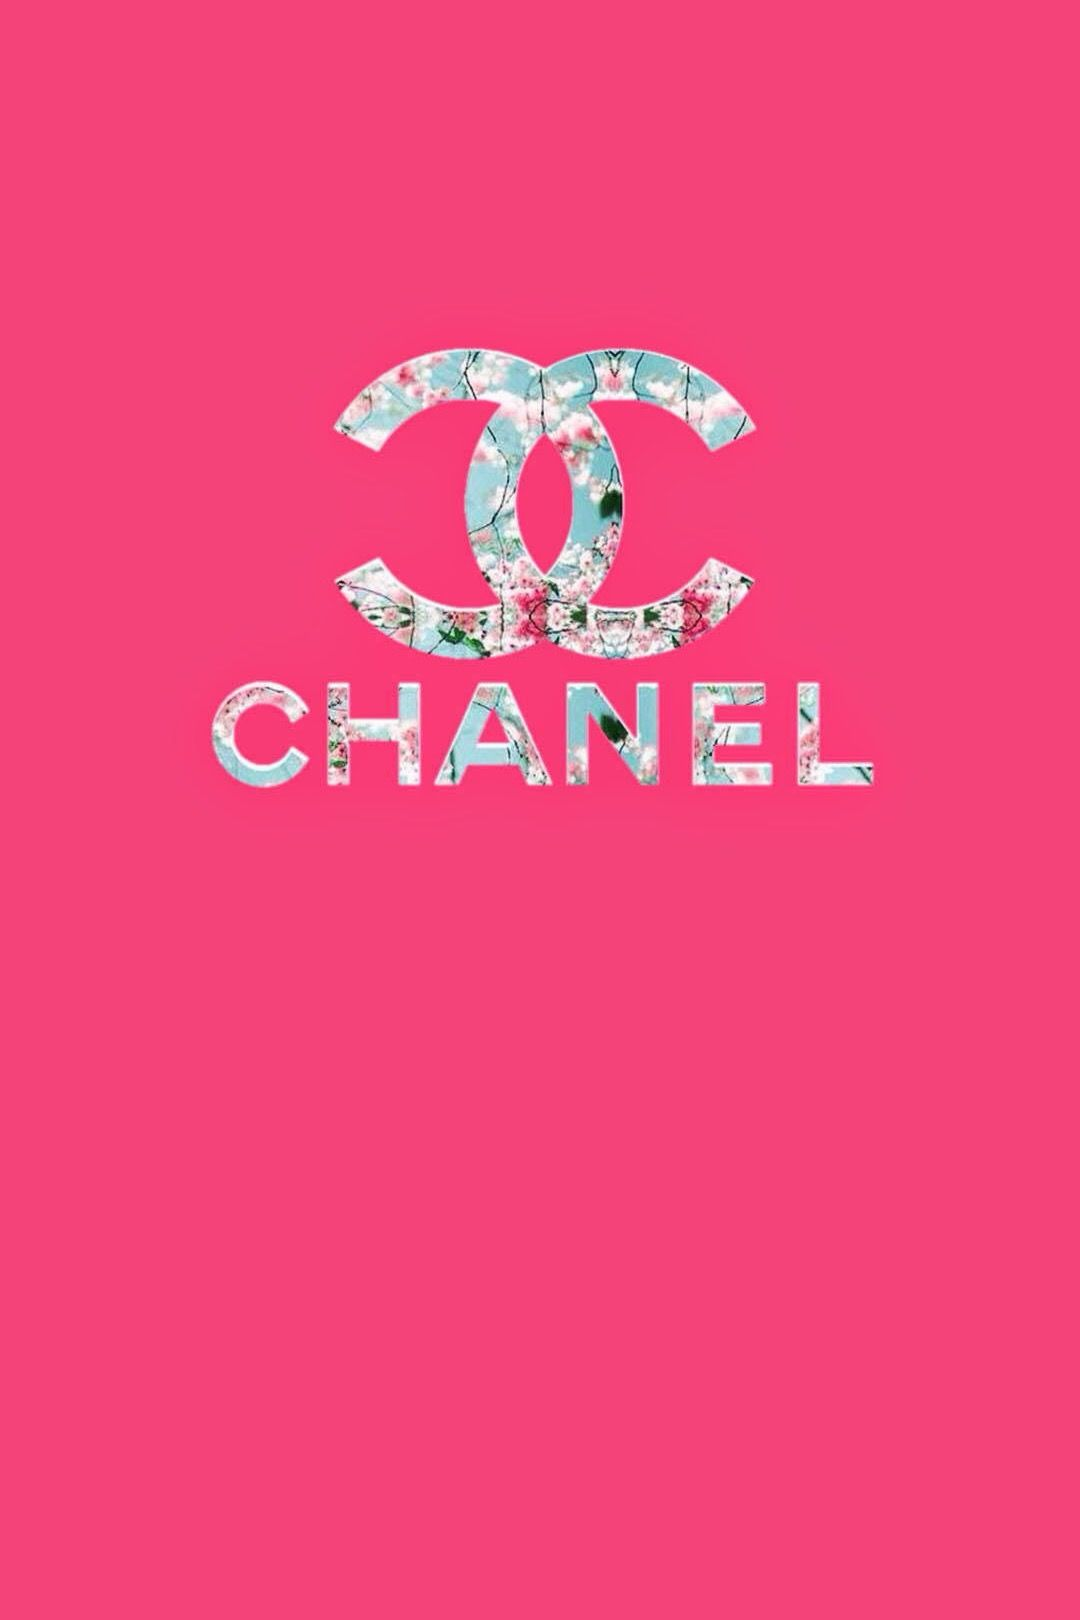 Pin by Pipa Pipe on A DONE CHANEL X SET Pinterest Wallpaper